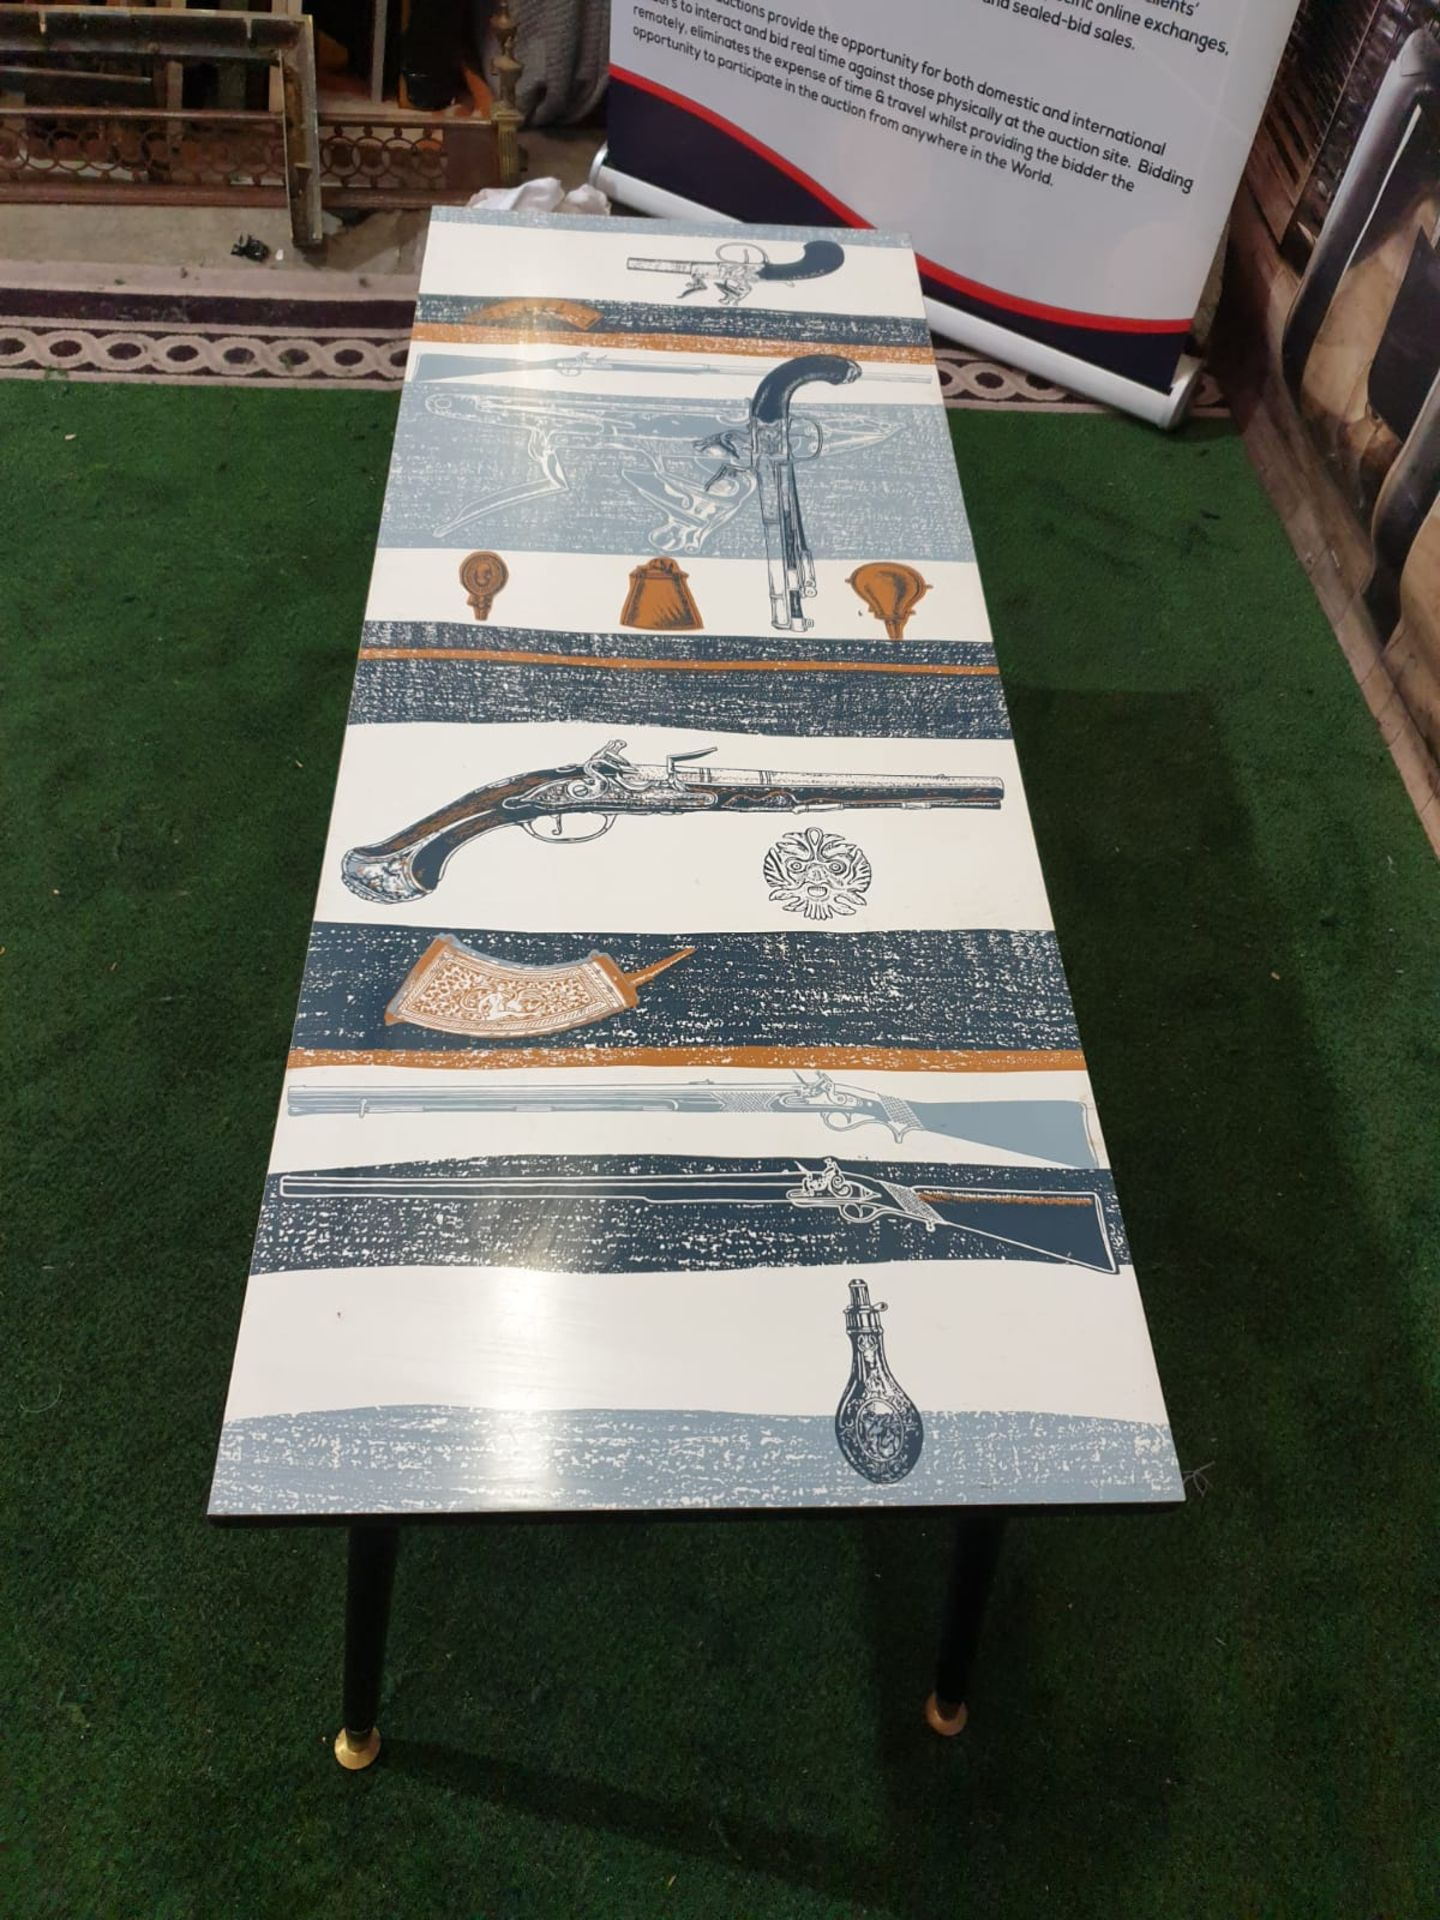 A 70's retro Coffee table with Pistol motifs laminated top on black legs 122 x 46 x 49cm - Image 3 of 3